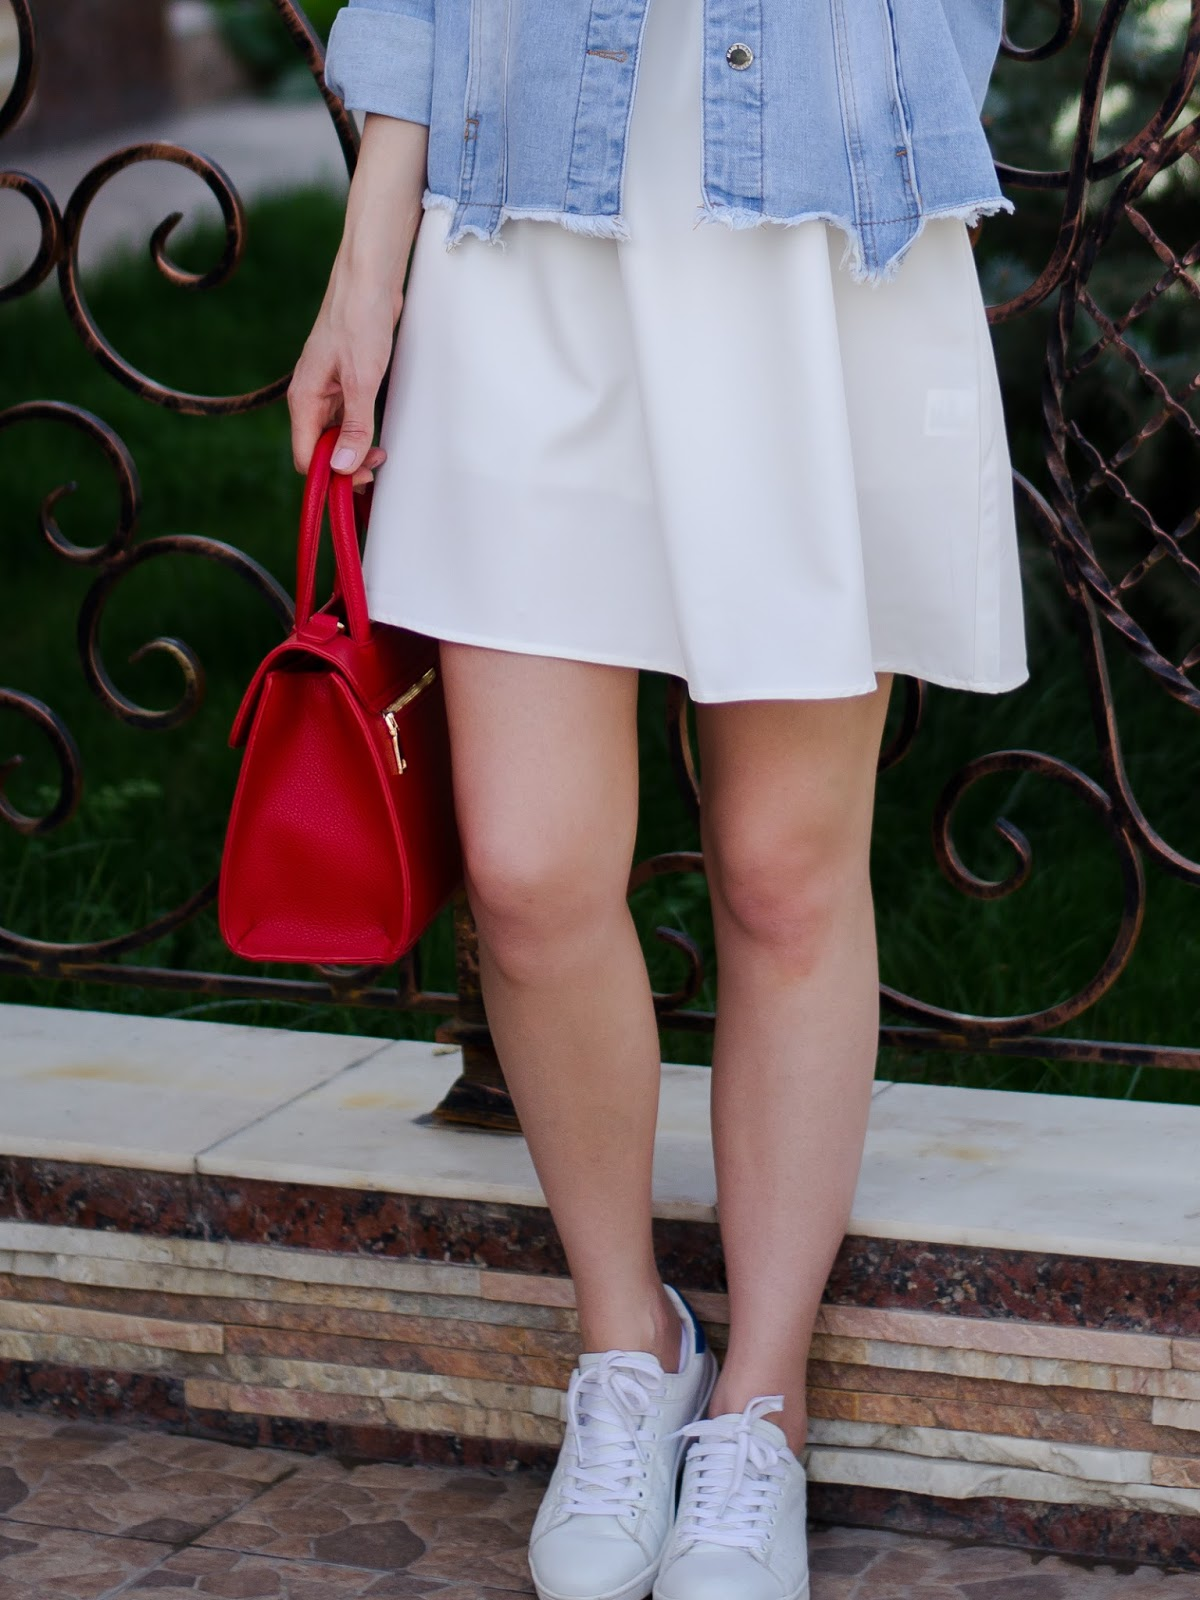 fashion blogger diyorasnotes diyora beta white mini dress denim jacket white sneakers red bag